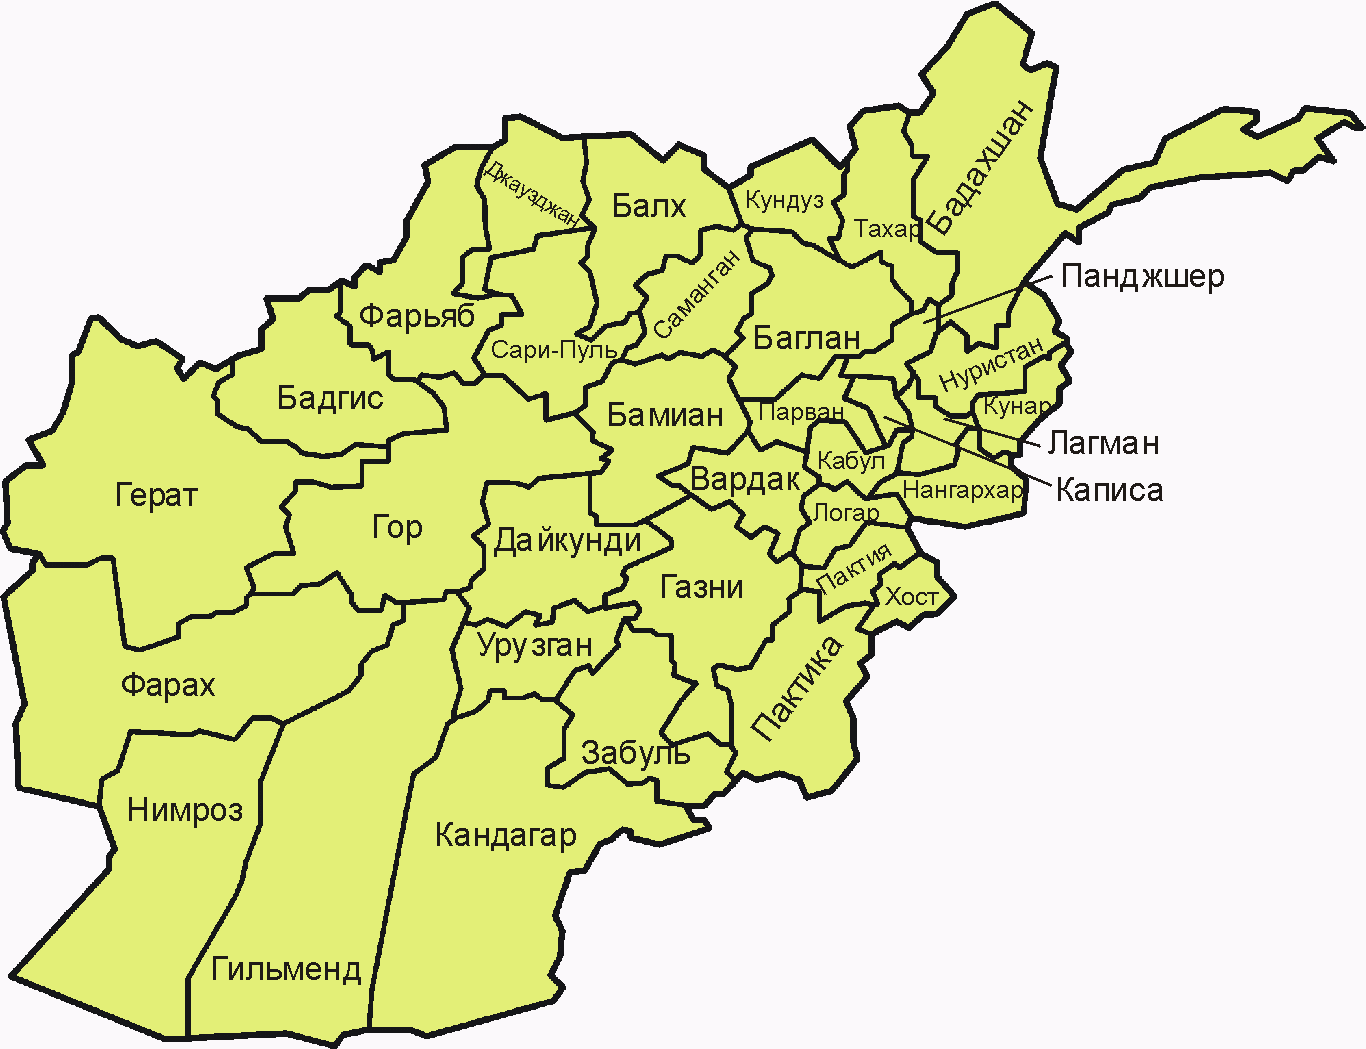 https://upload.wikimedia.org/wikipedia/commons/2/28/Afghanistan_provinces_russian.png